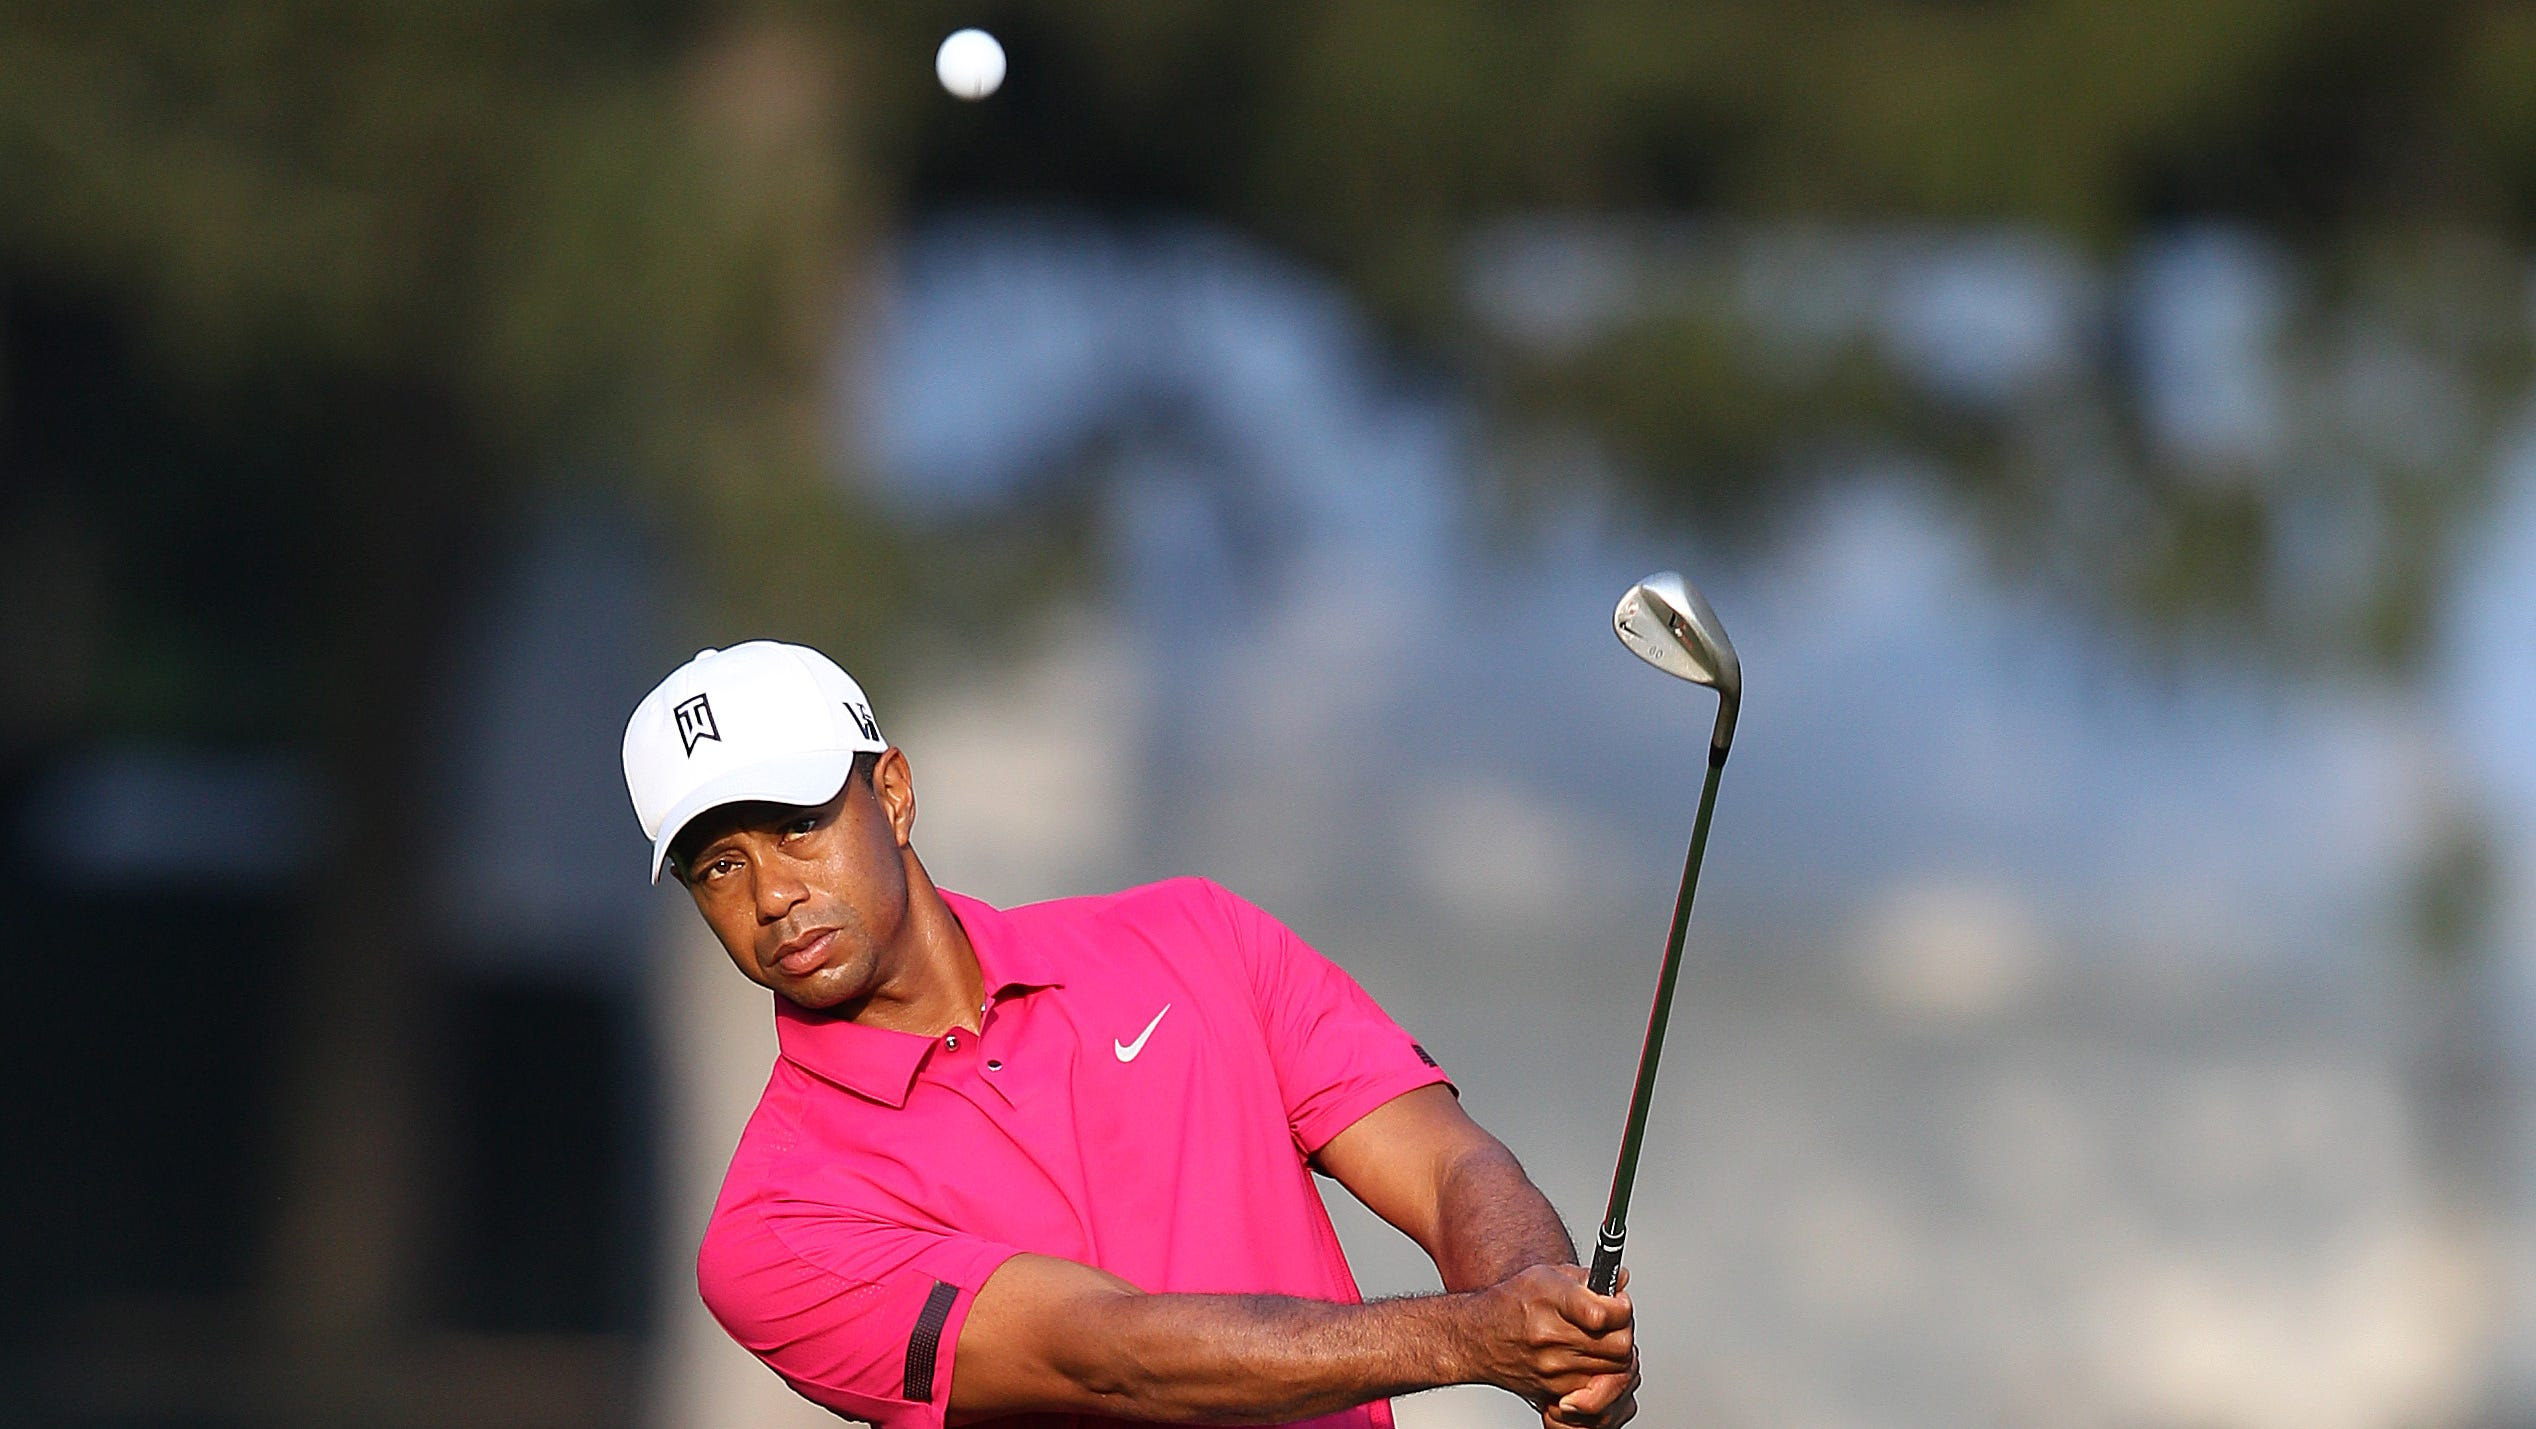 Tiger Woods chipped this shot in on 2nd hole. It was his third try from this spot.